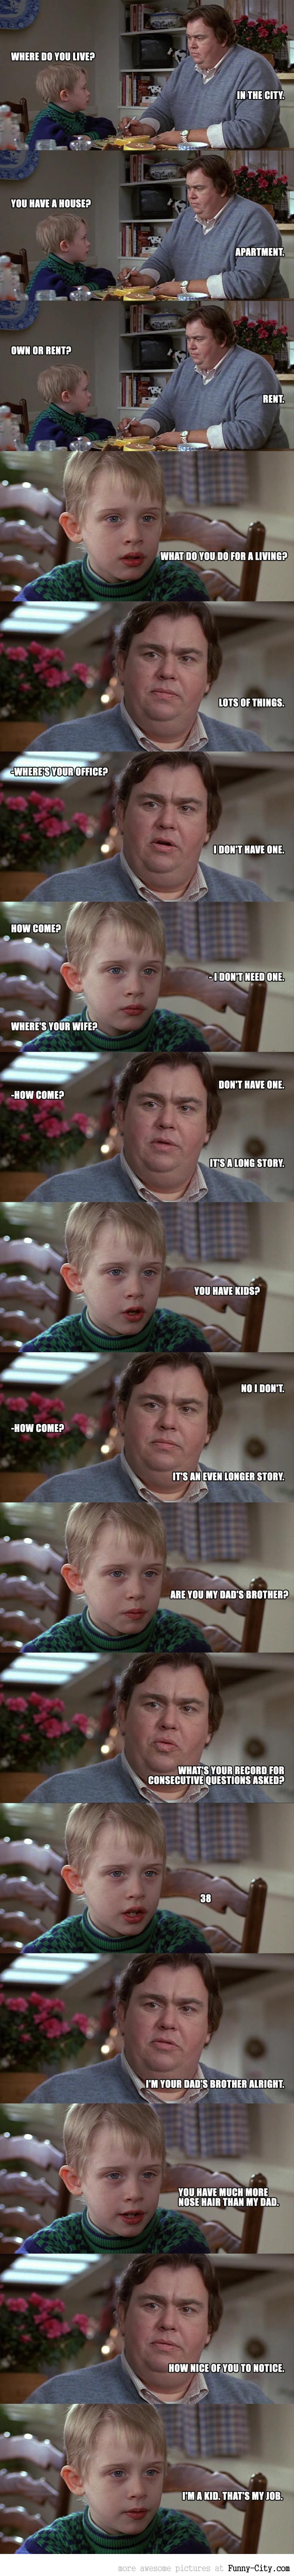 Uncle Buck - Record for consecutive questions asked